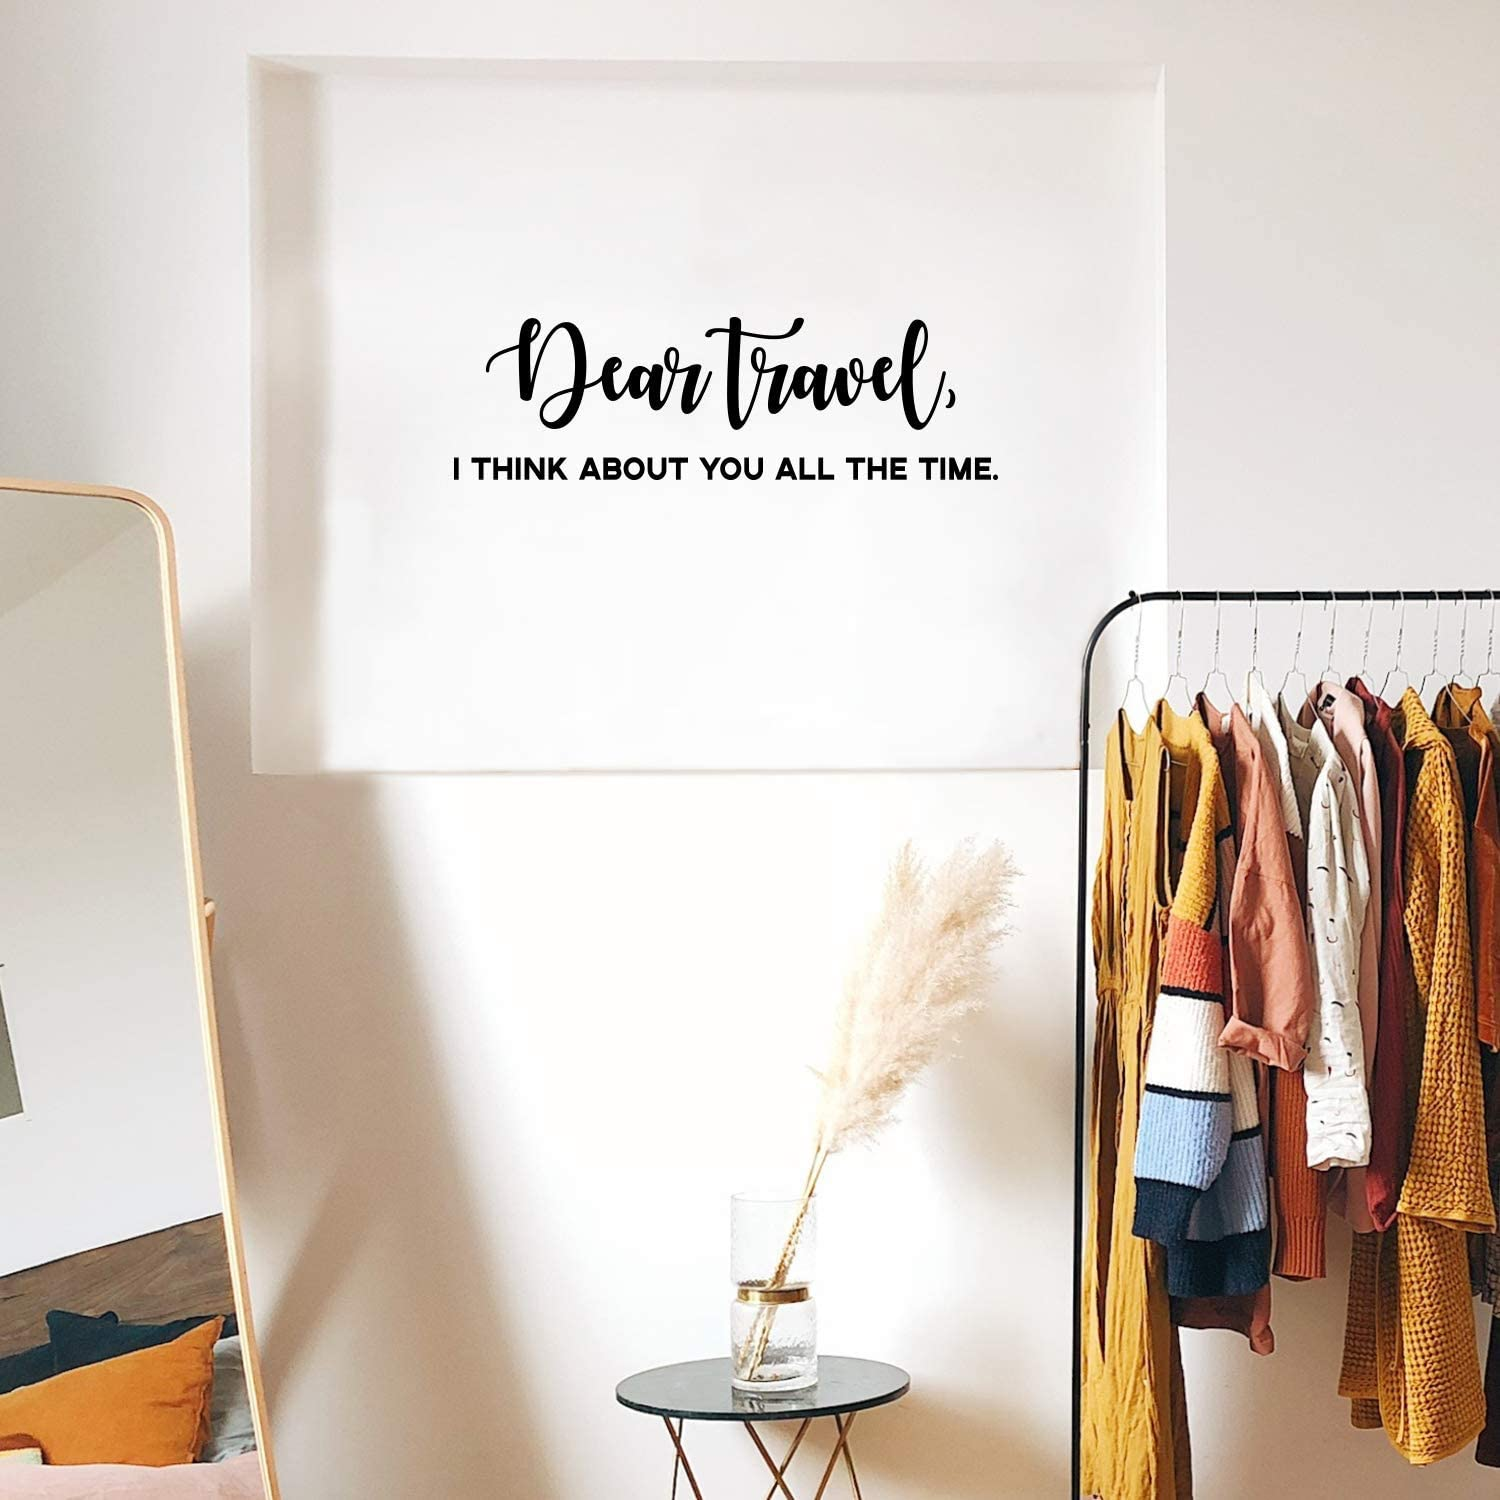 """Vinyl Wall Art Decal - Dear Travel I Think About You All The Time - 9"""" x 30"""" - Witty Modern Traveler Vacations Quote for Home Bedroom Apartment Living Room Office Workplace Decor"""